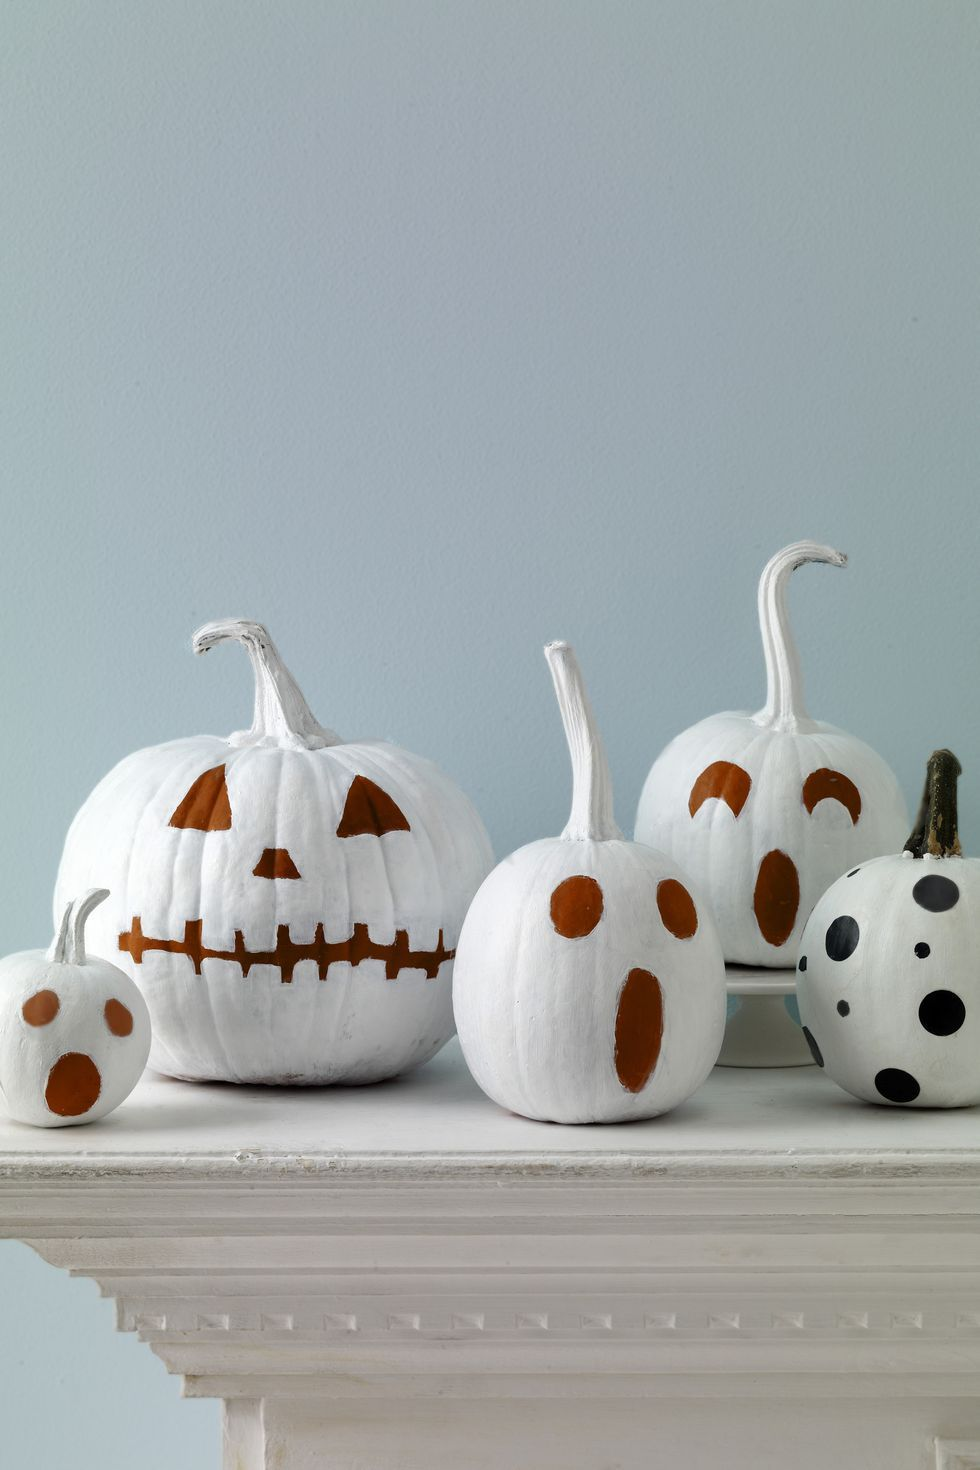 14 Elegant Halloween Decorations - Shop Classy Halloween Decor Ideas - Elegant Halloween Decor